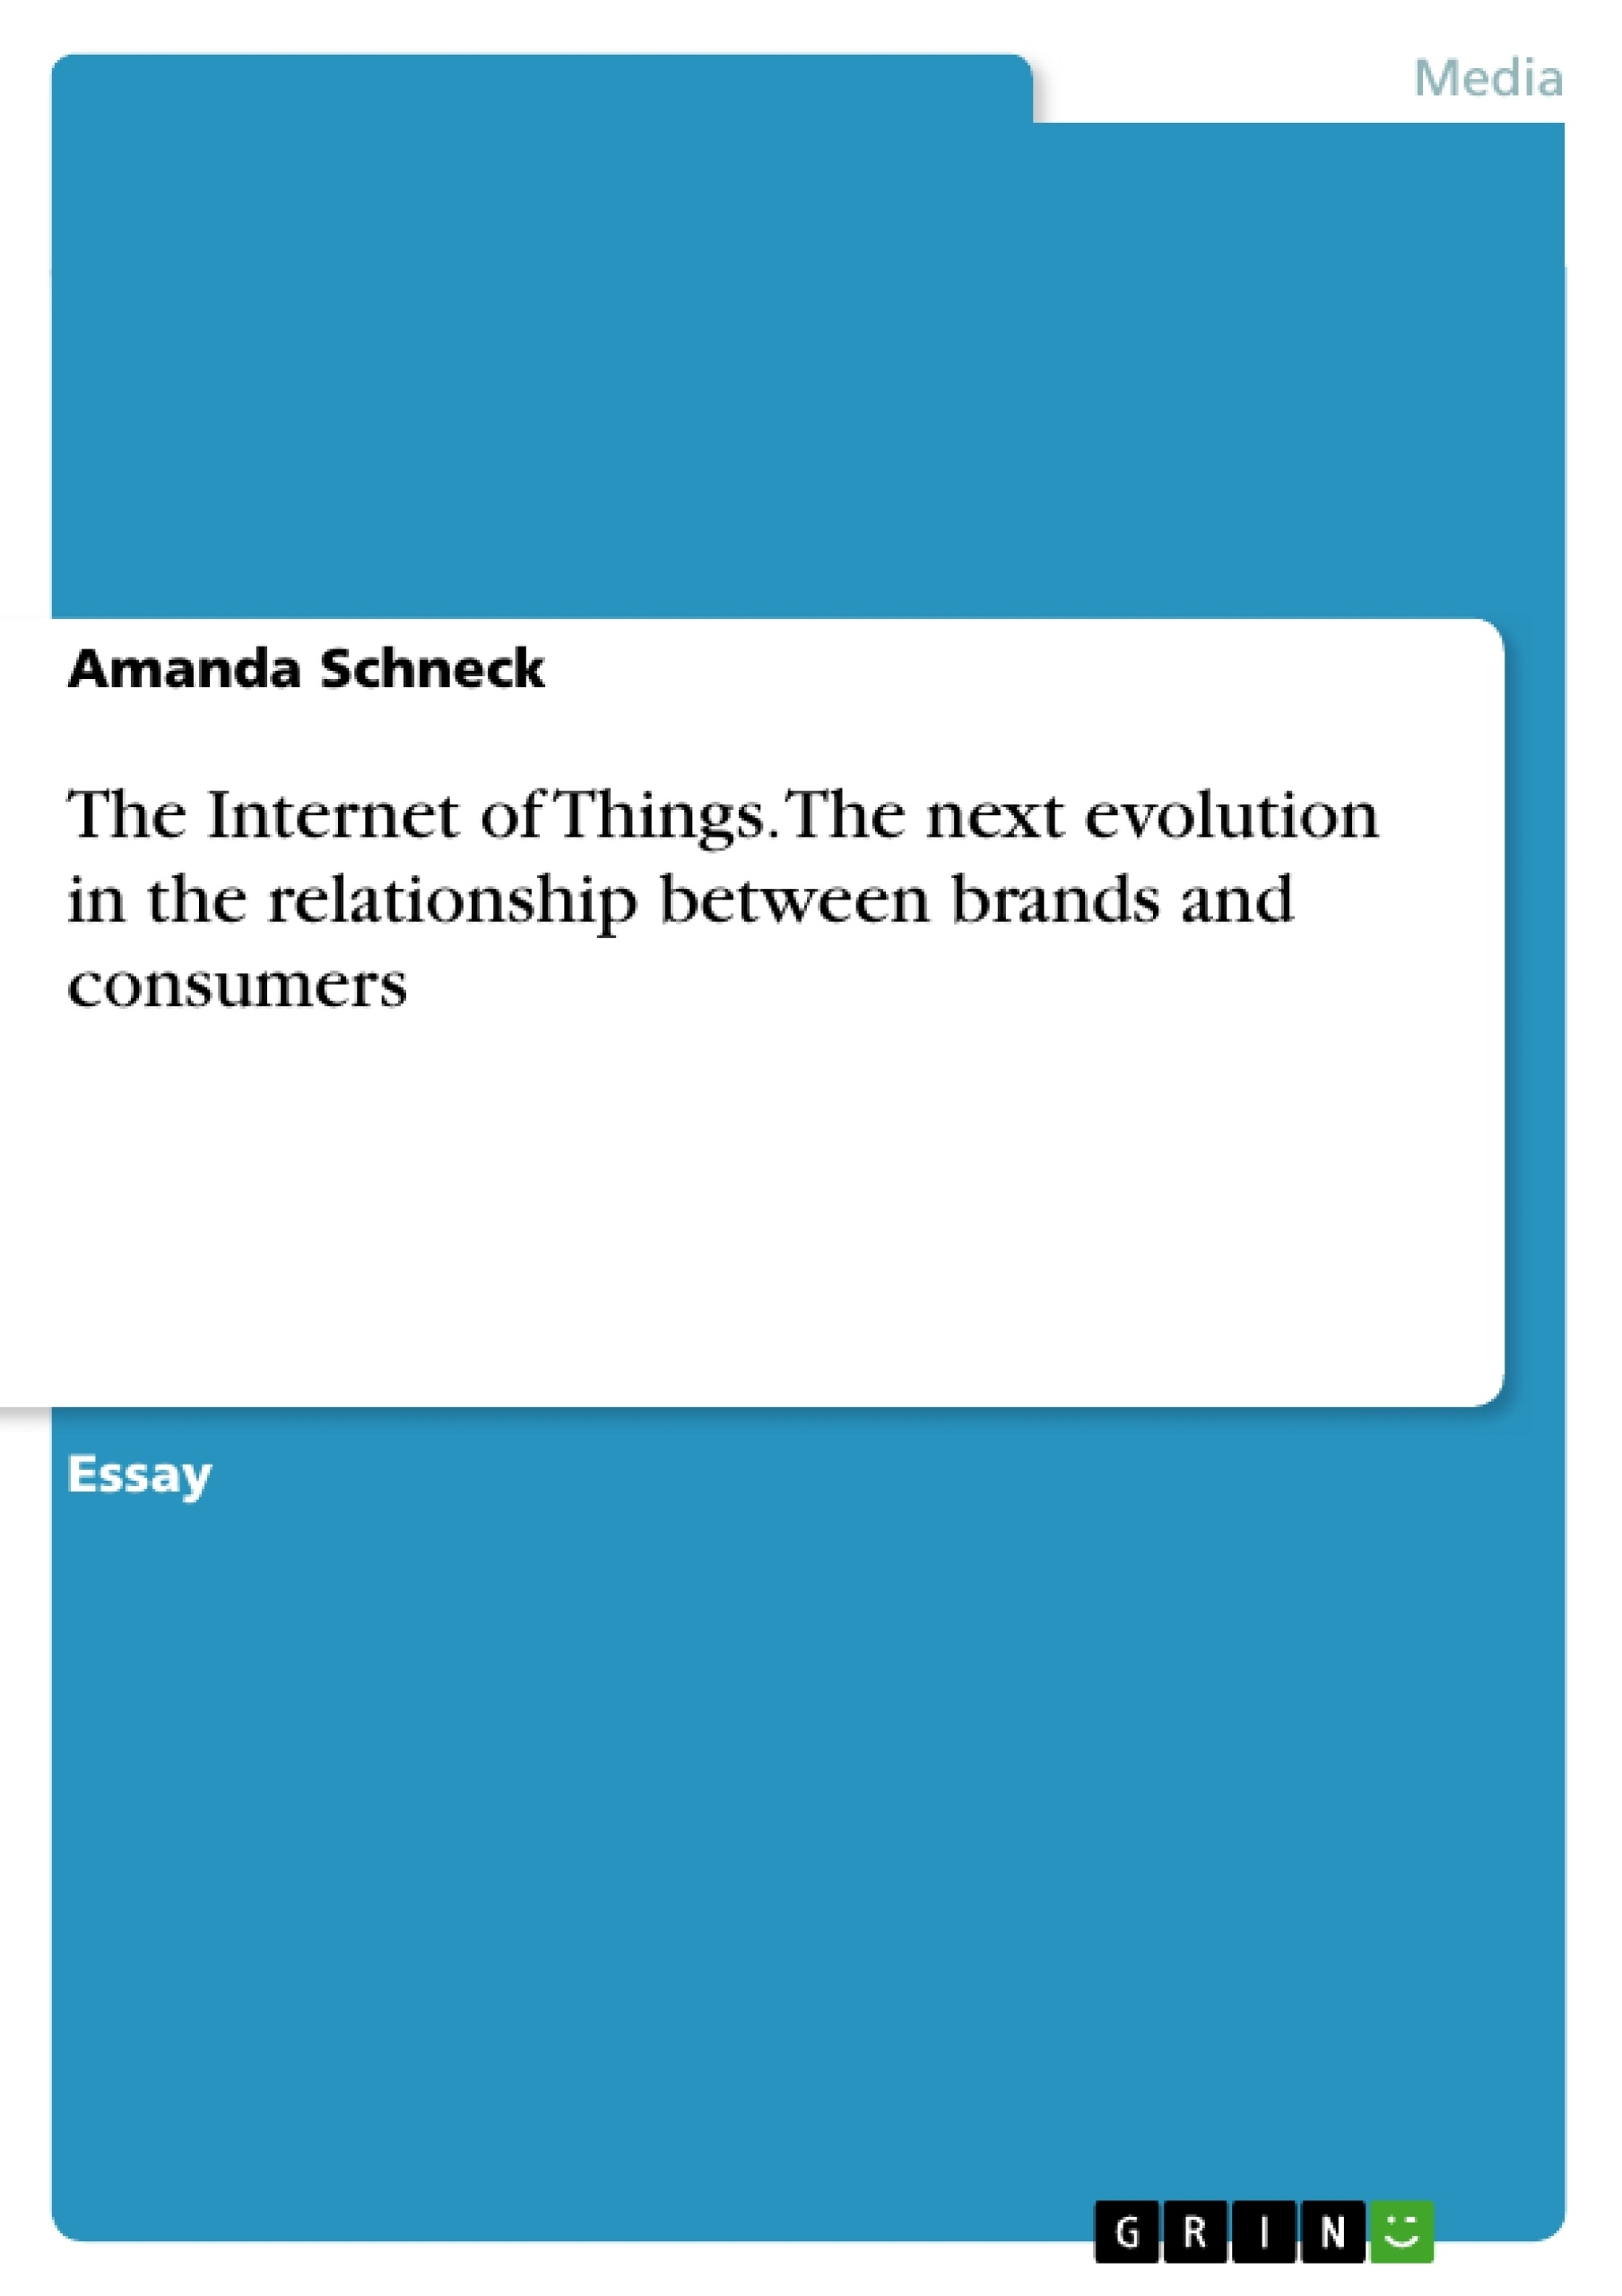 Title: The Internet of Things. The next evolution in the relationship between brands and consumers